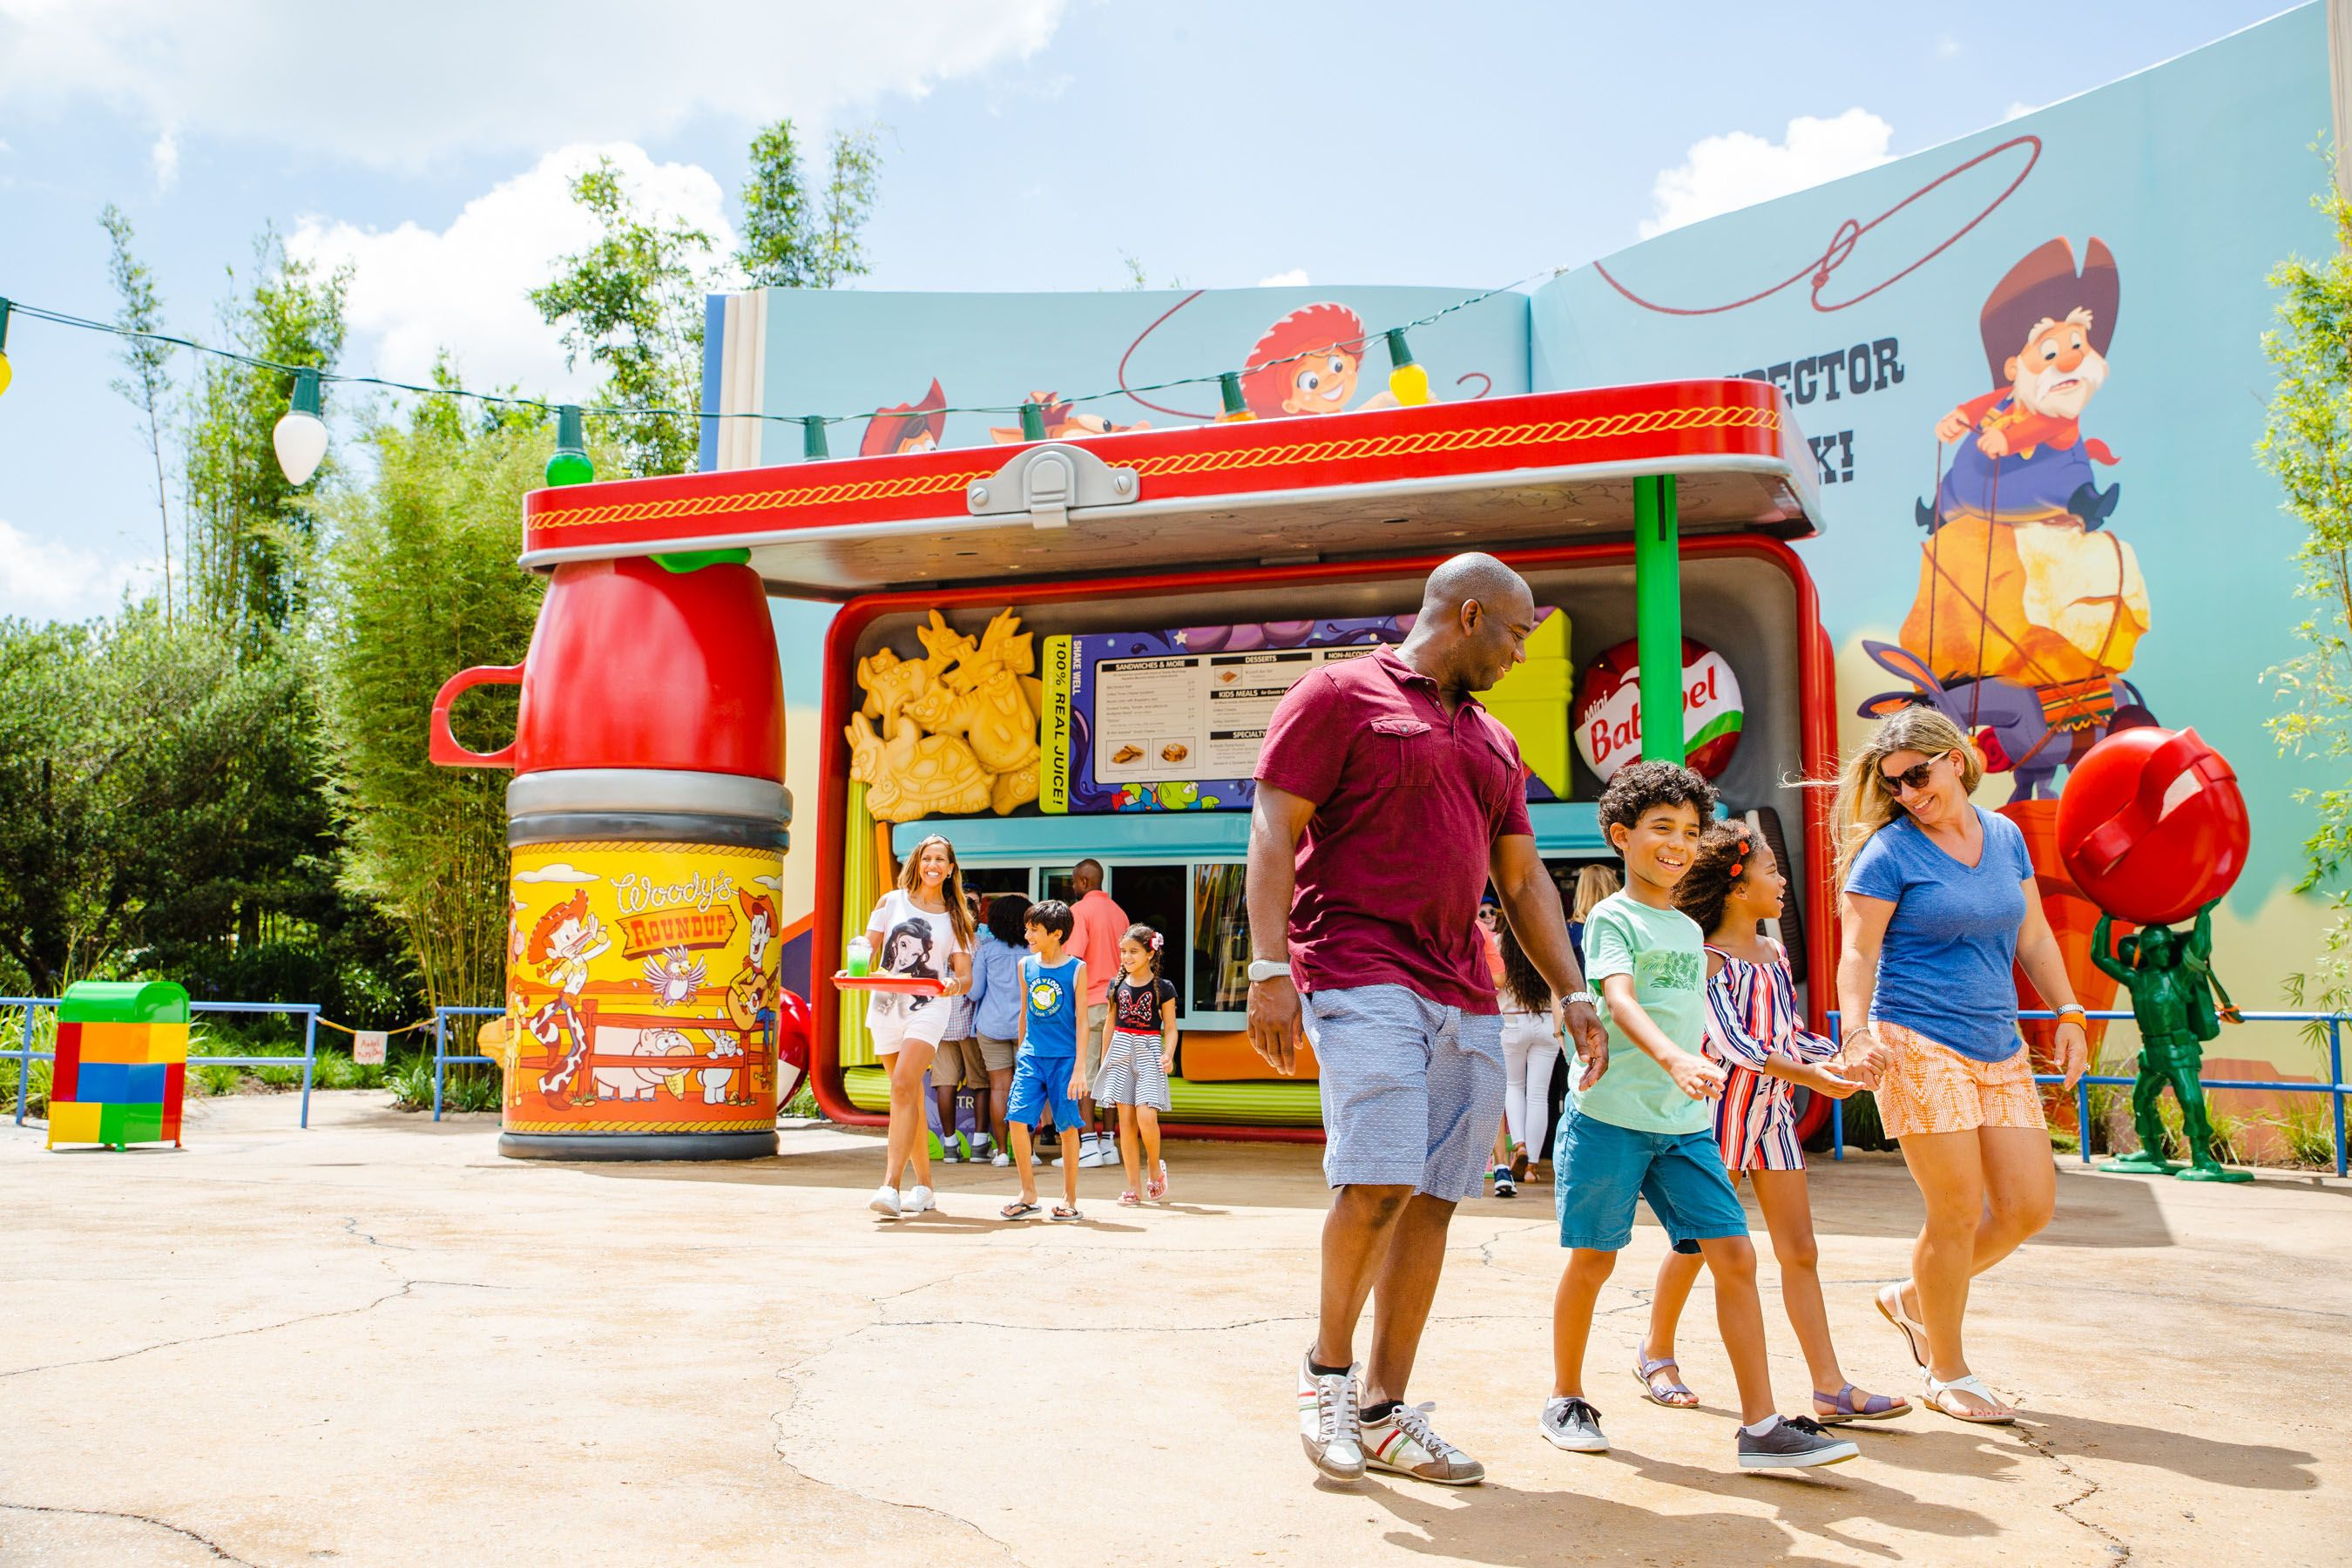 Woodys Lunch Box at Disneys Toy Story Land Features a